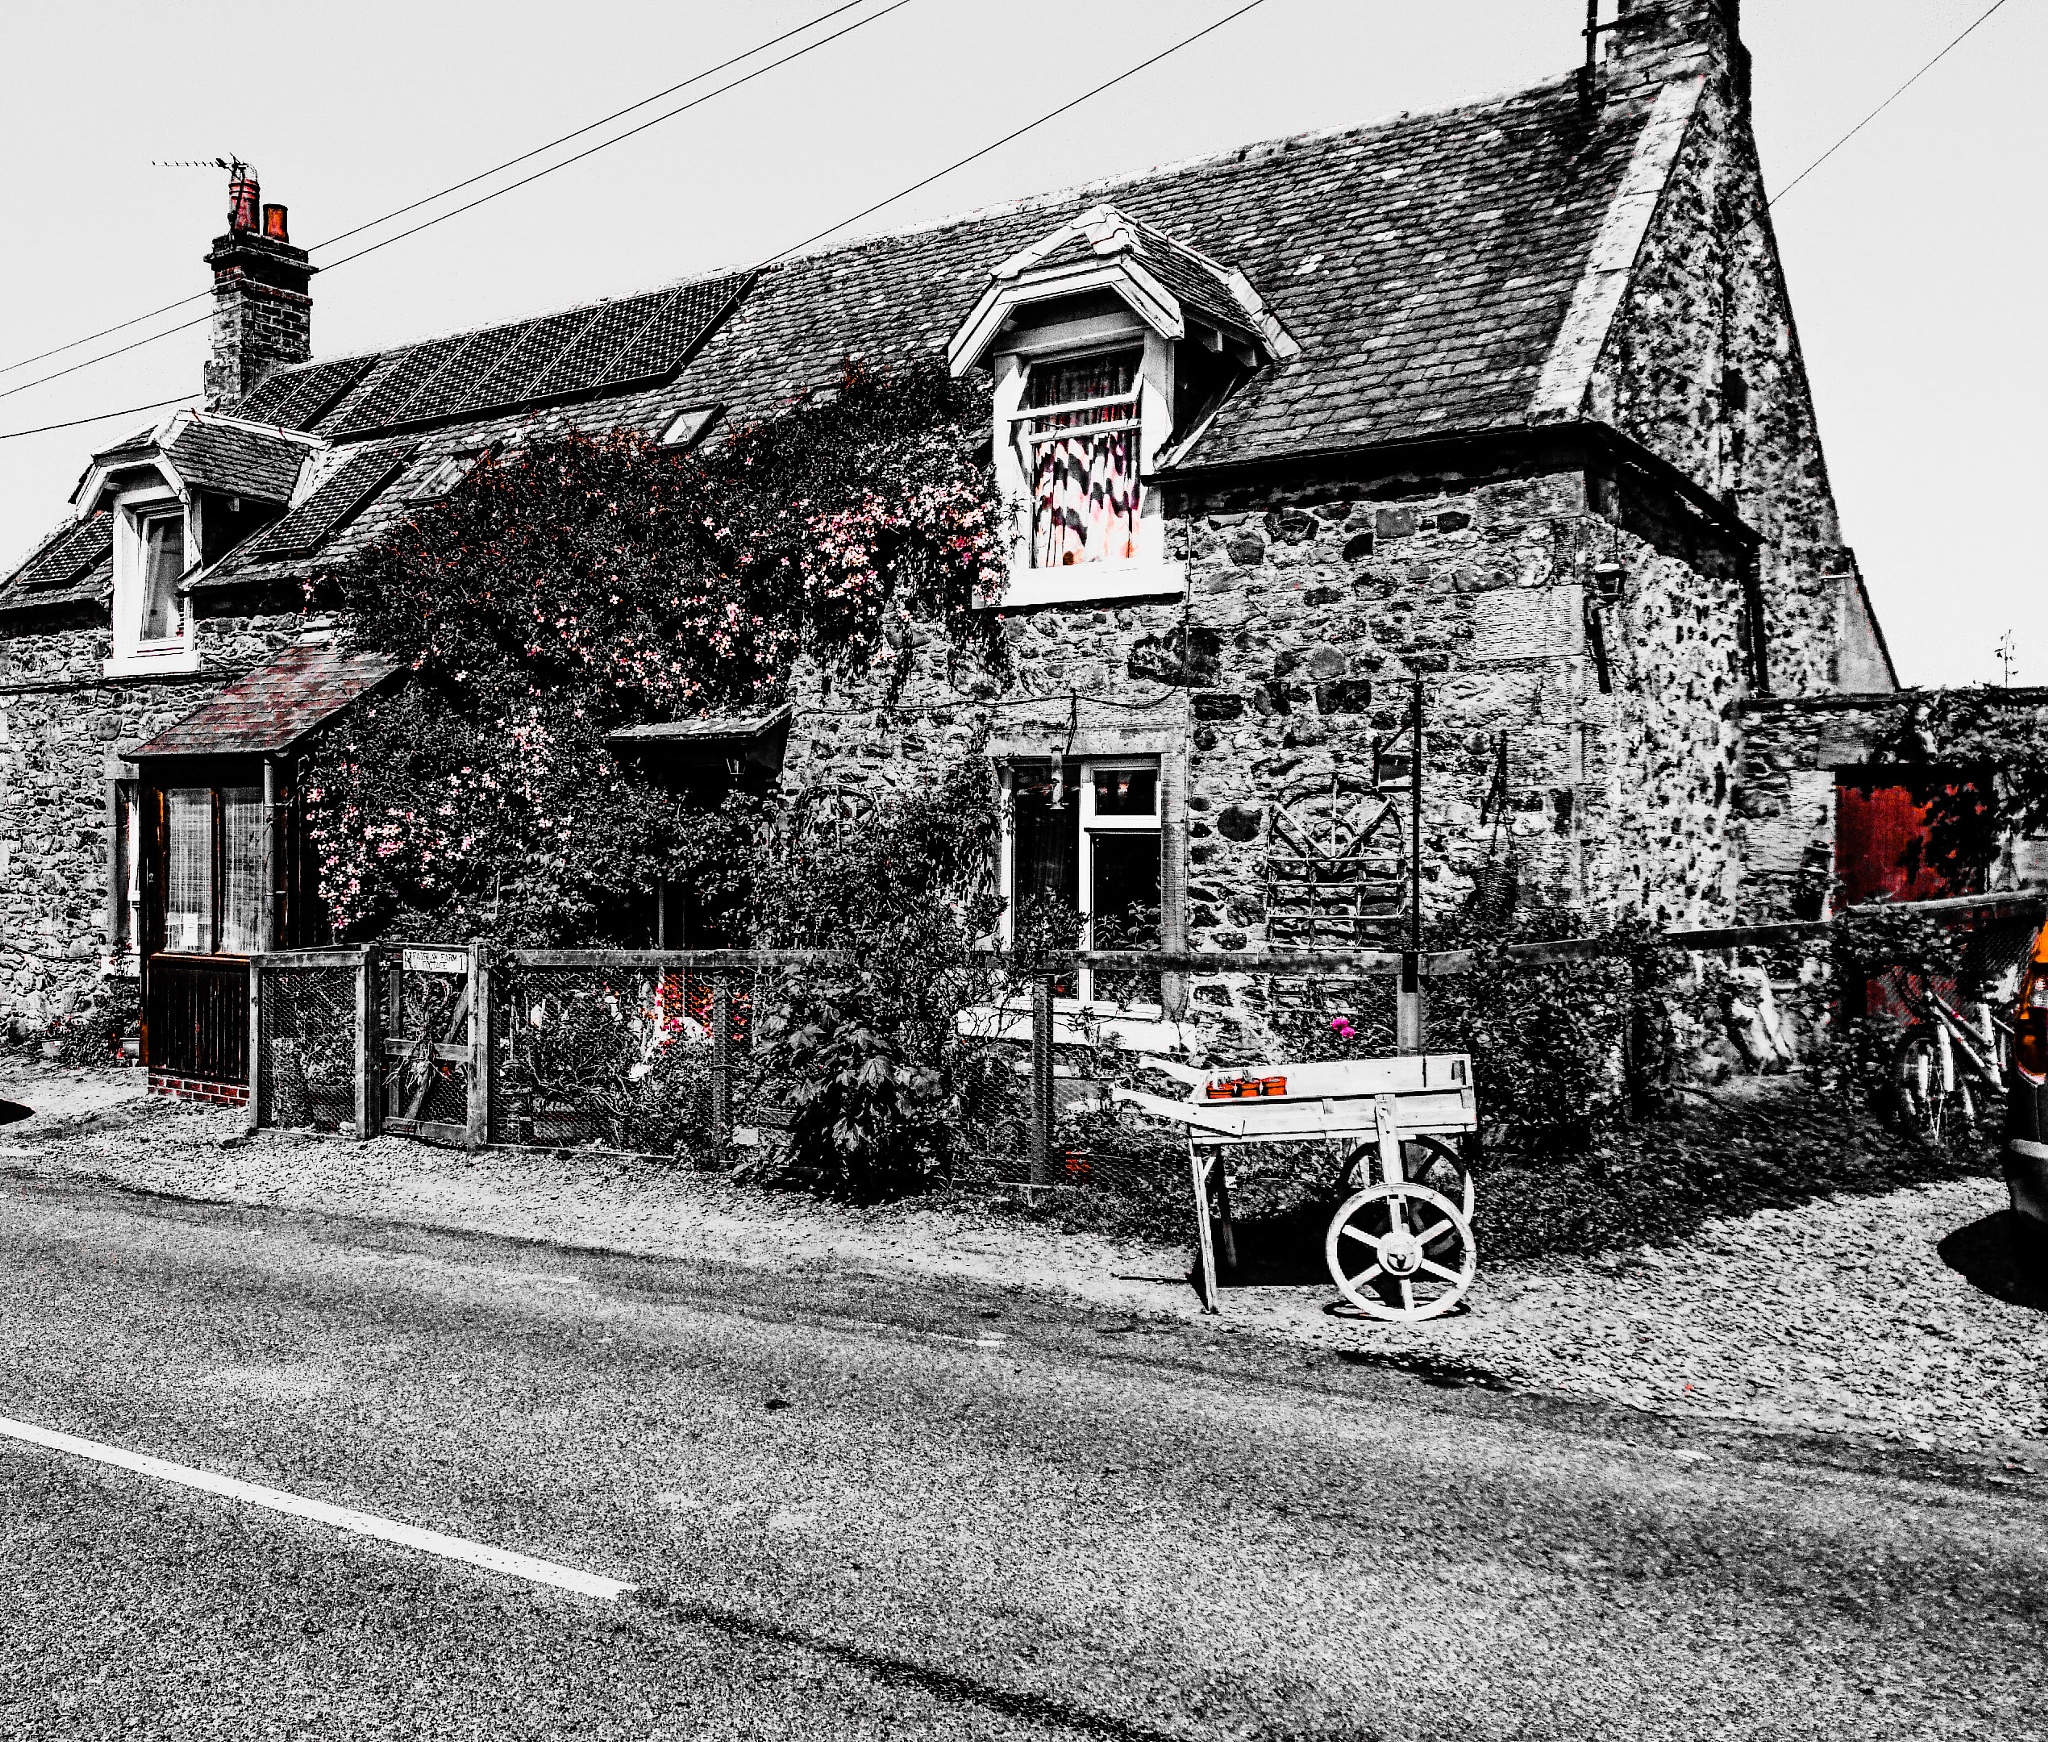 Fairlaw cottages (Scottish Borders)  by Stevie